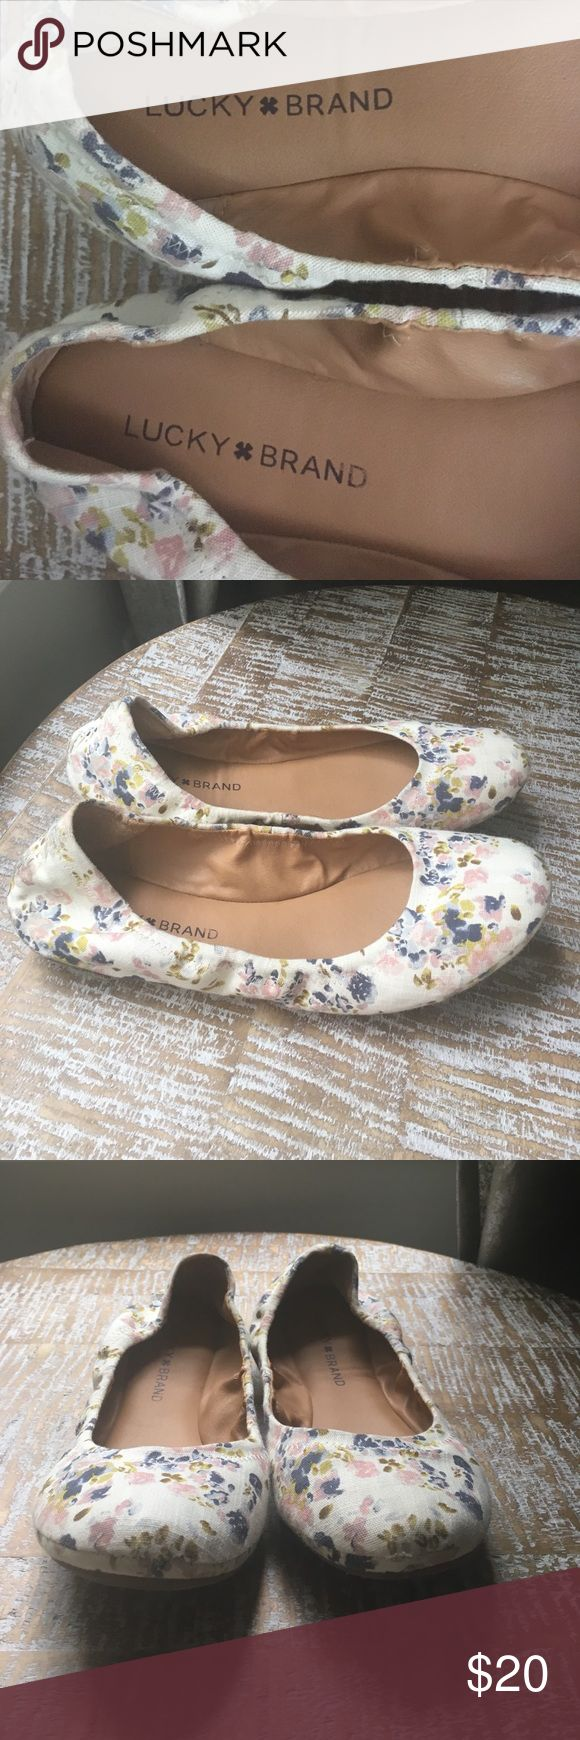 Floral Ballet Flats! Multi-colored ballet flats with navy and Carolina blue, pink, and olive colored florals. I loved them, but they are just a little small for my foot. Practically new, but a little broke in which is great for the next buyer! Lucky Brand Shoes Flats & Loafers